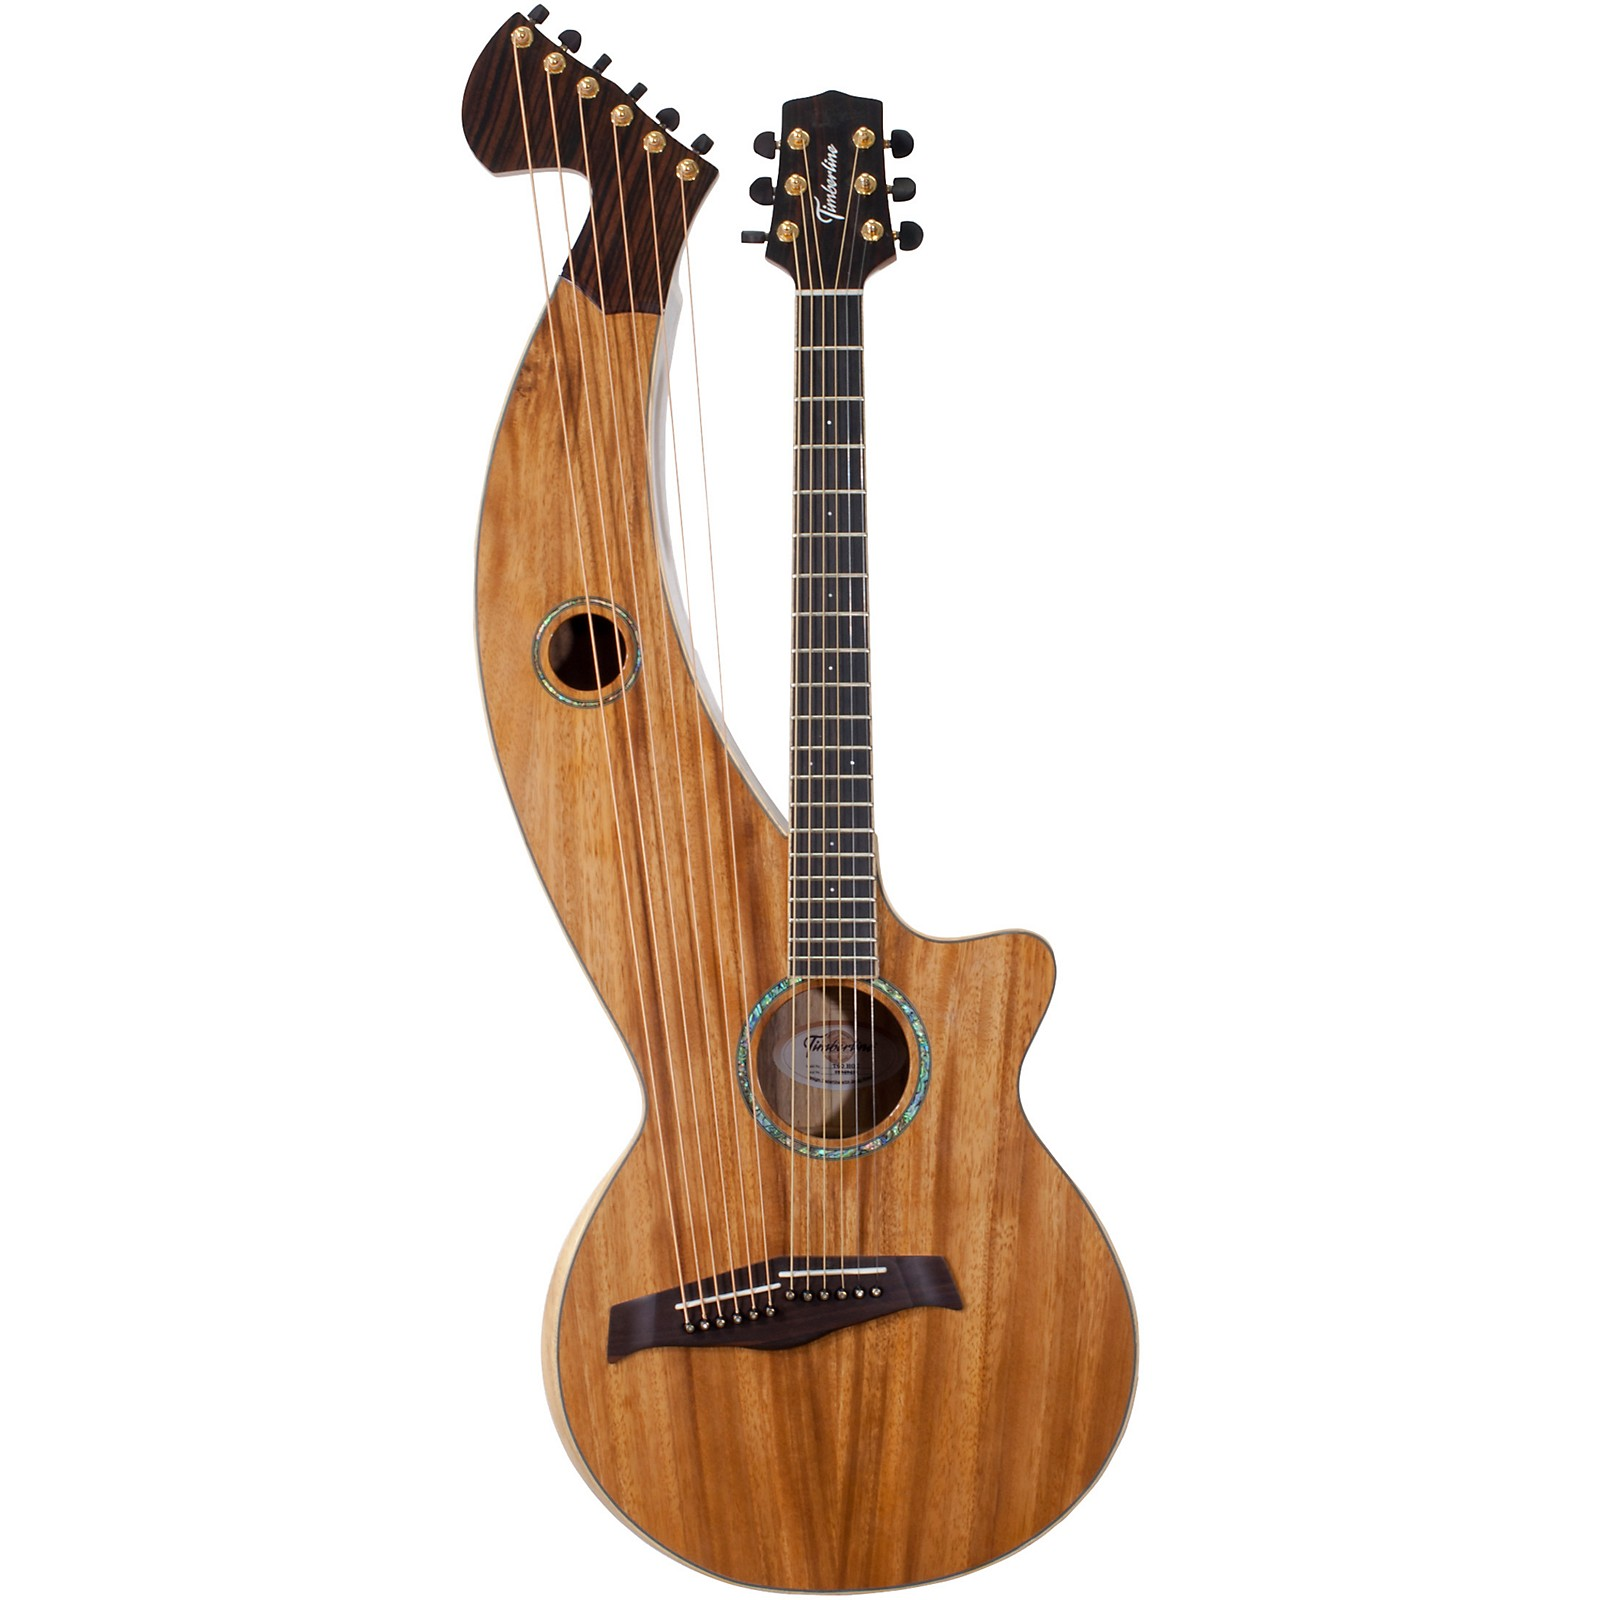 Timberline Guitars T60HGc Solid Tropical Acacia 12-String Cutaway Acoustic-Electric Harp Guitar